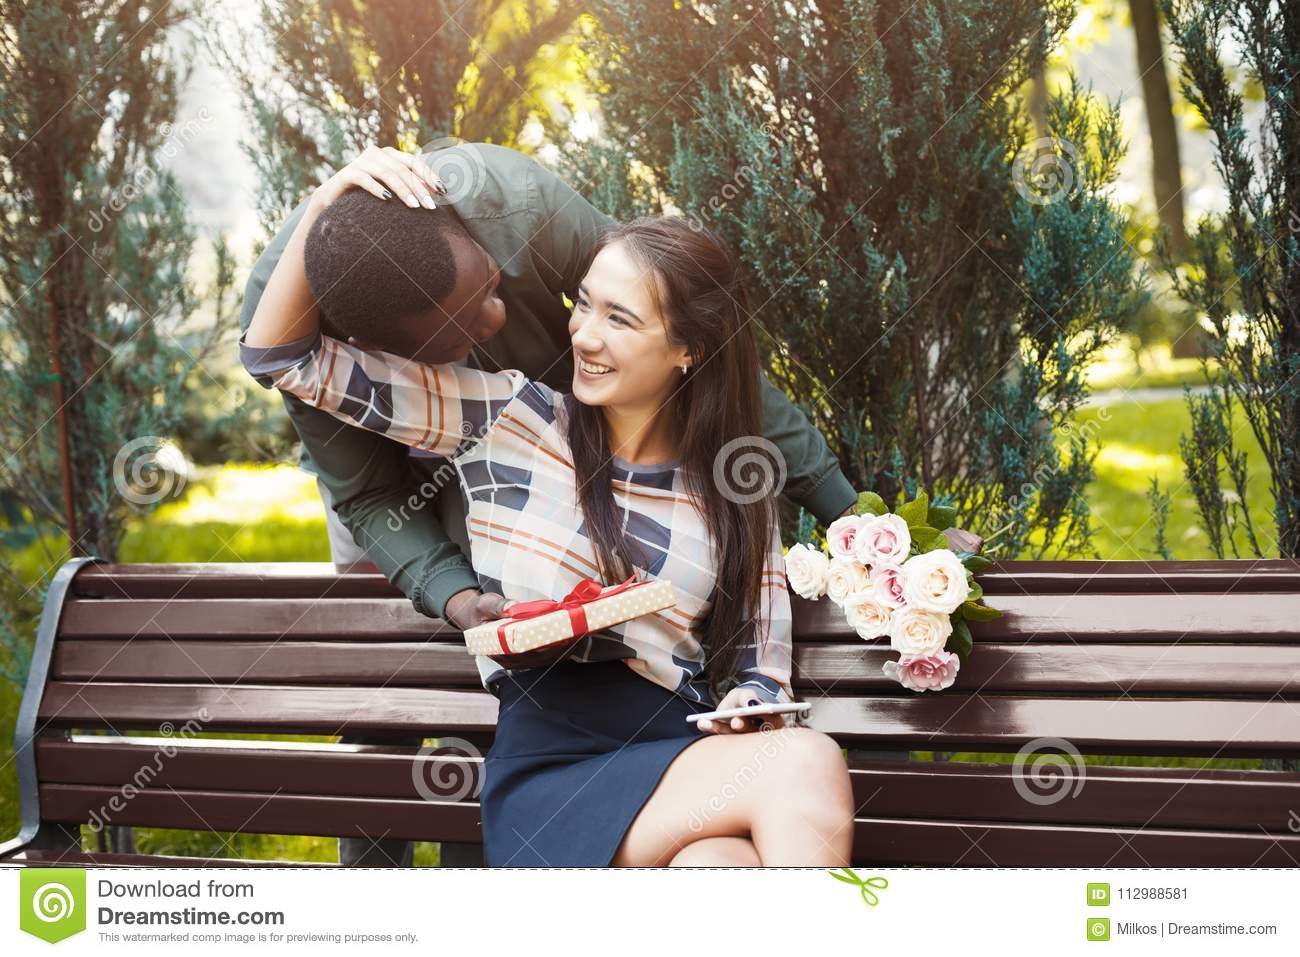 Man giving flowers and gift for his girlfriend